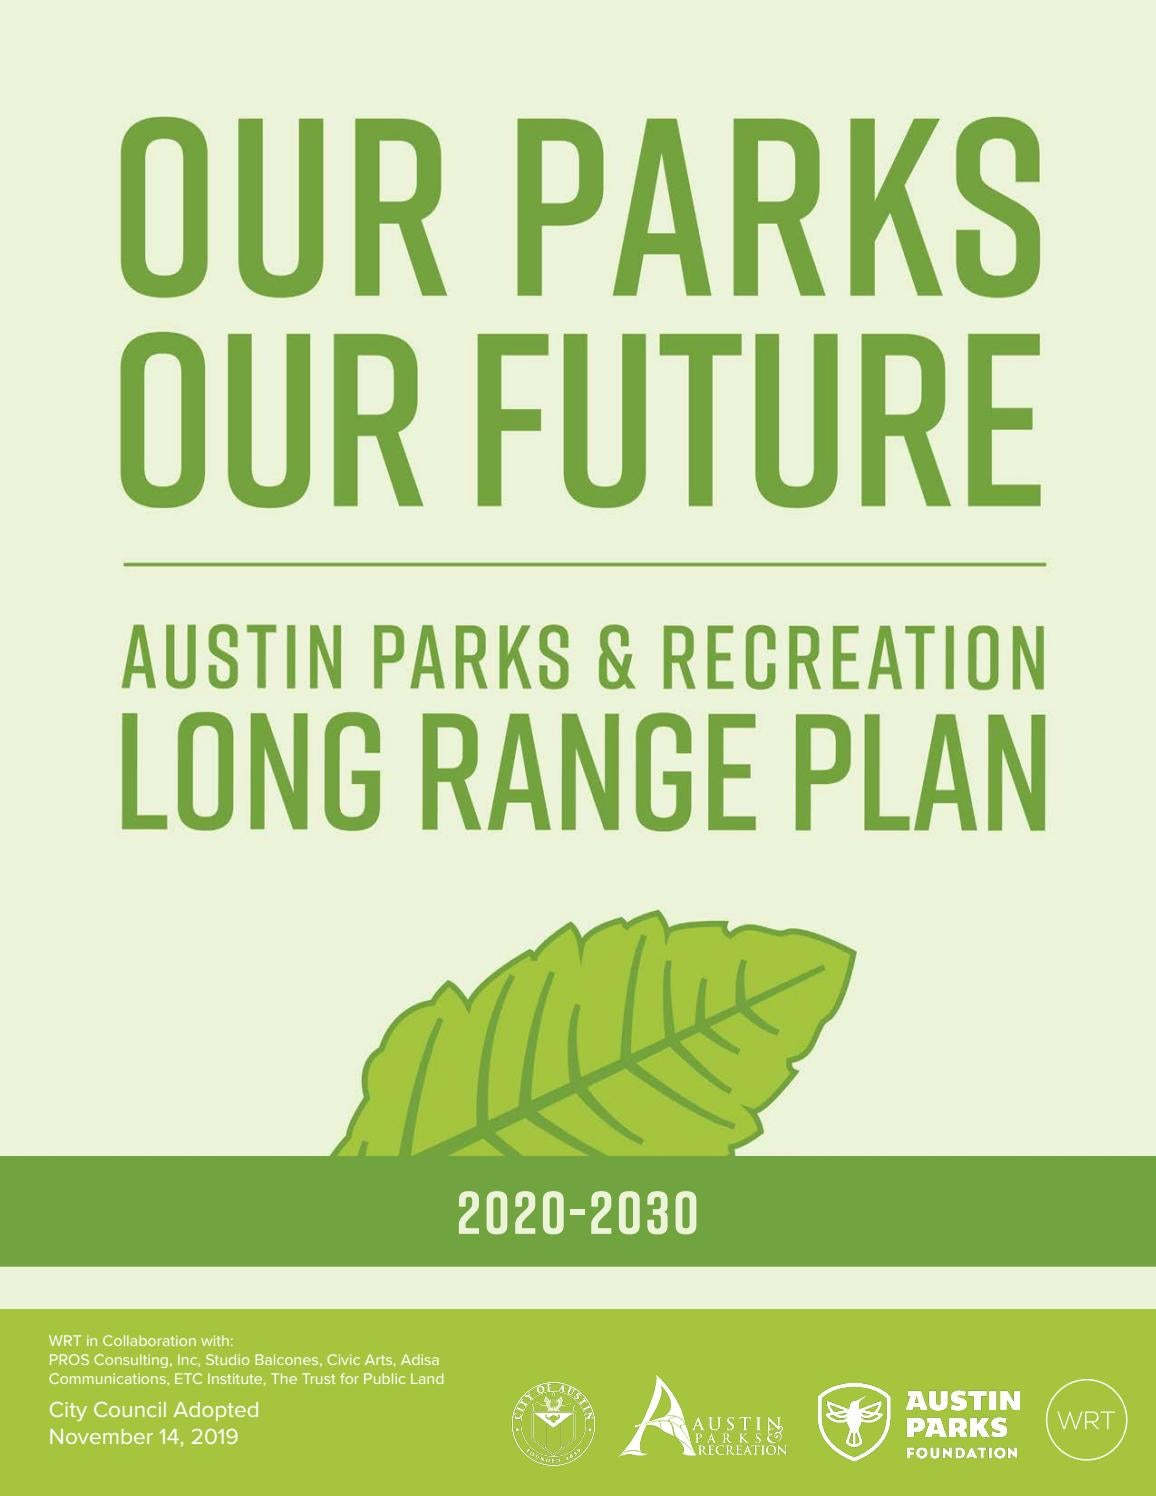 Our Parks Our Future Austin Parks And Recreation Long Range Plan 2020 2030 By Austin Parks And Recreation Department Issuu